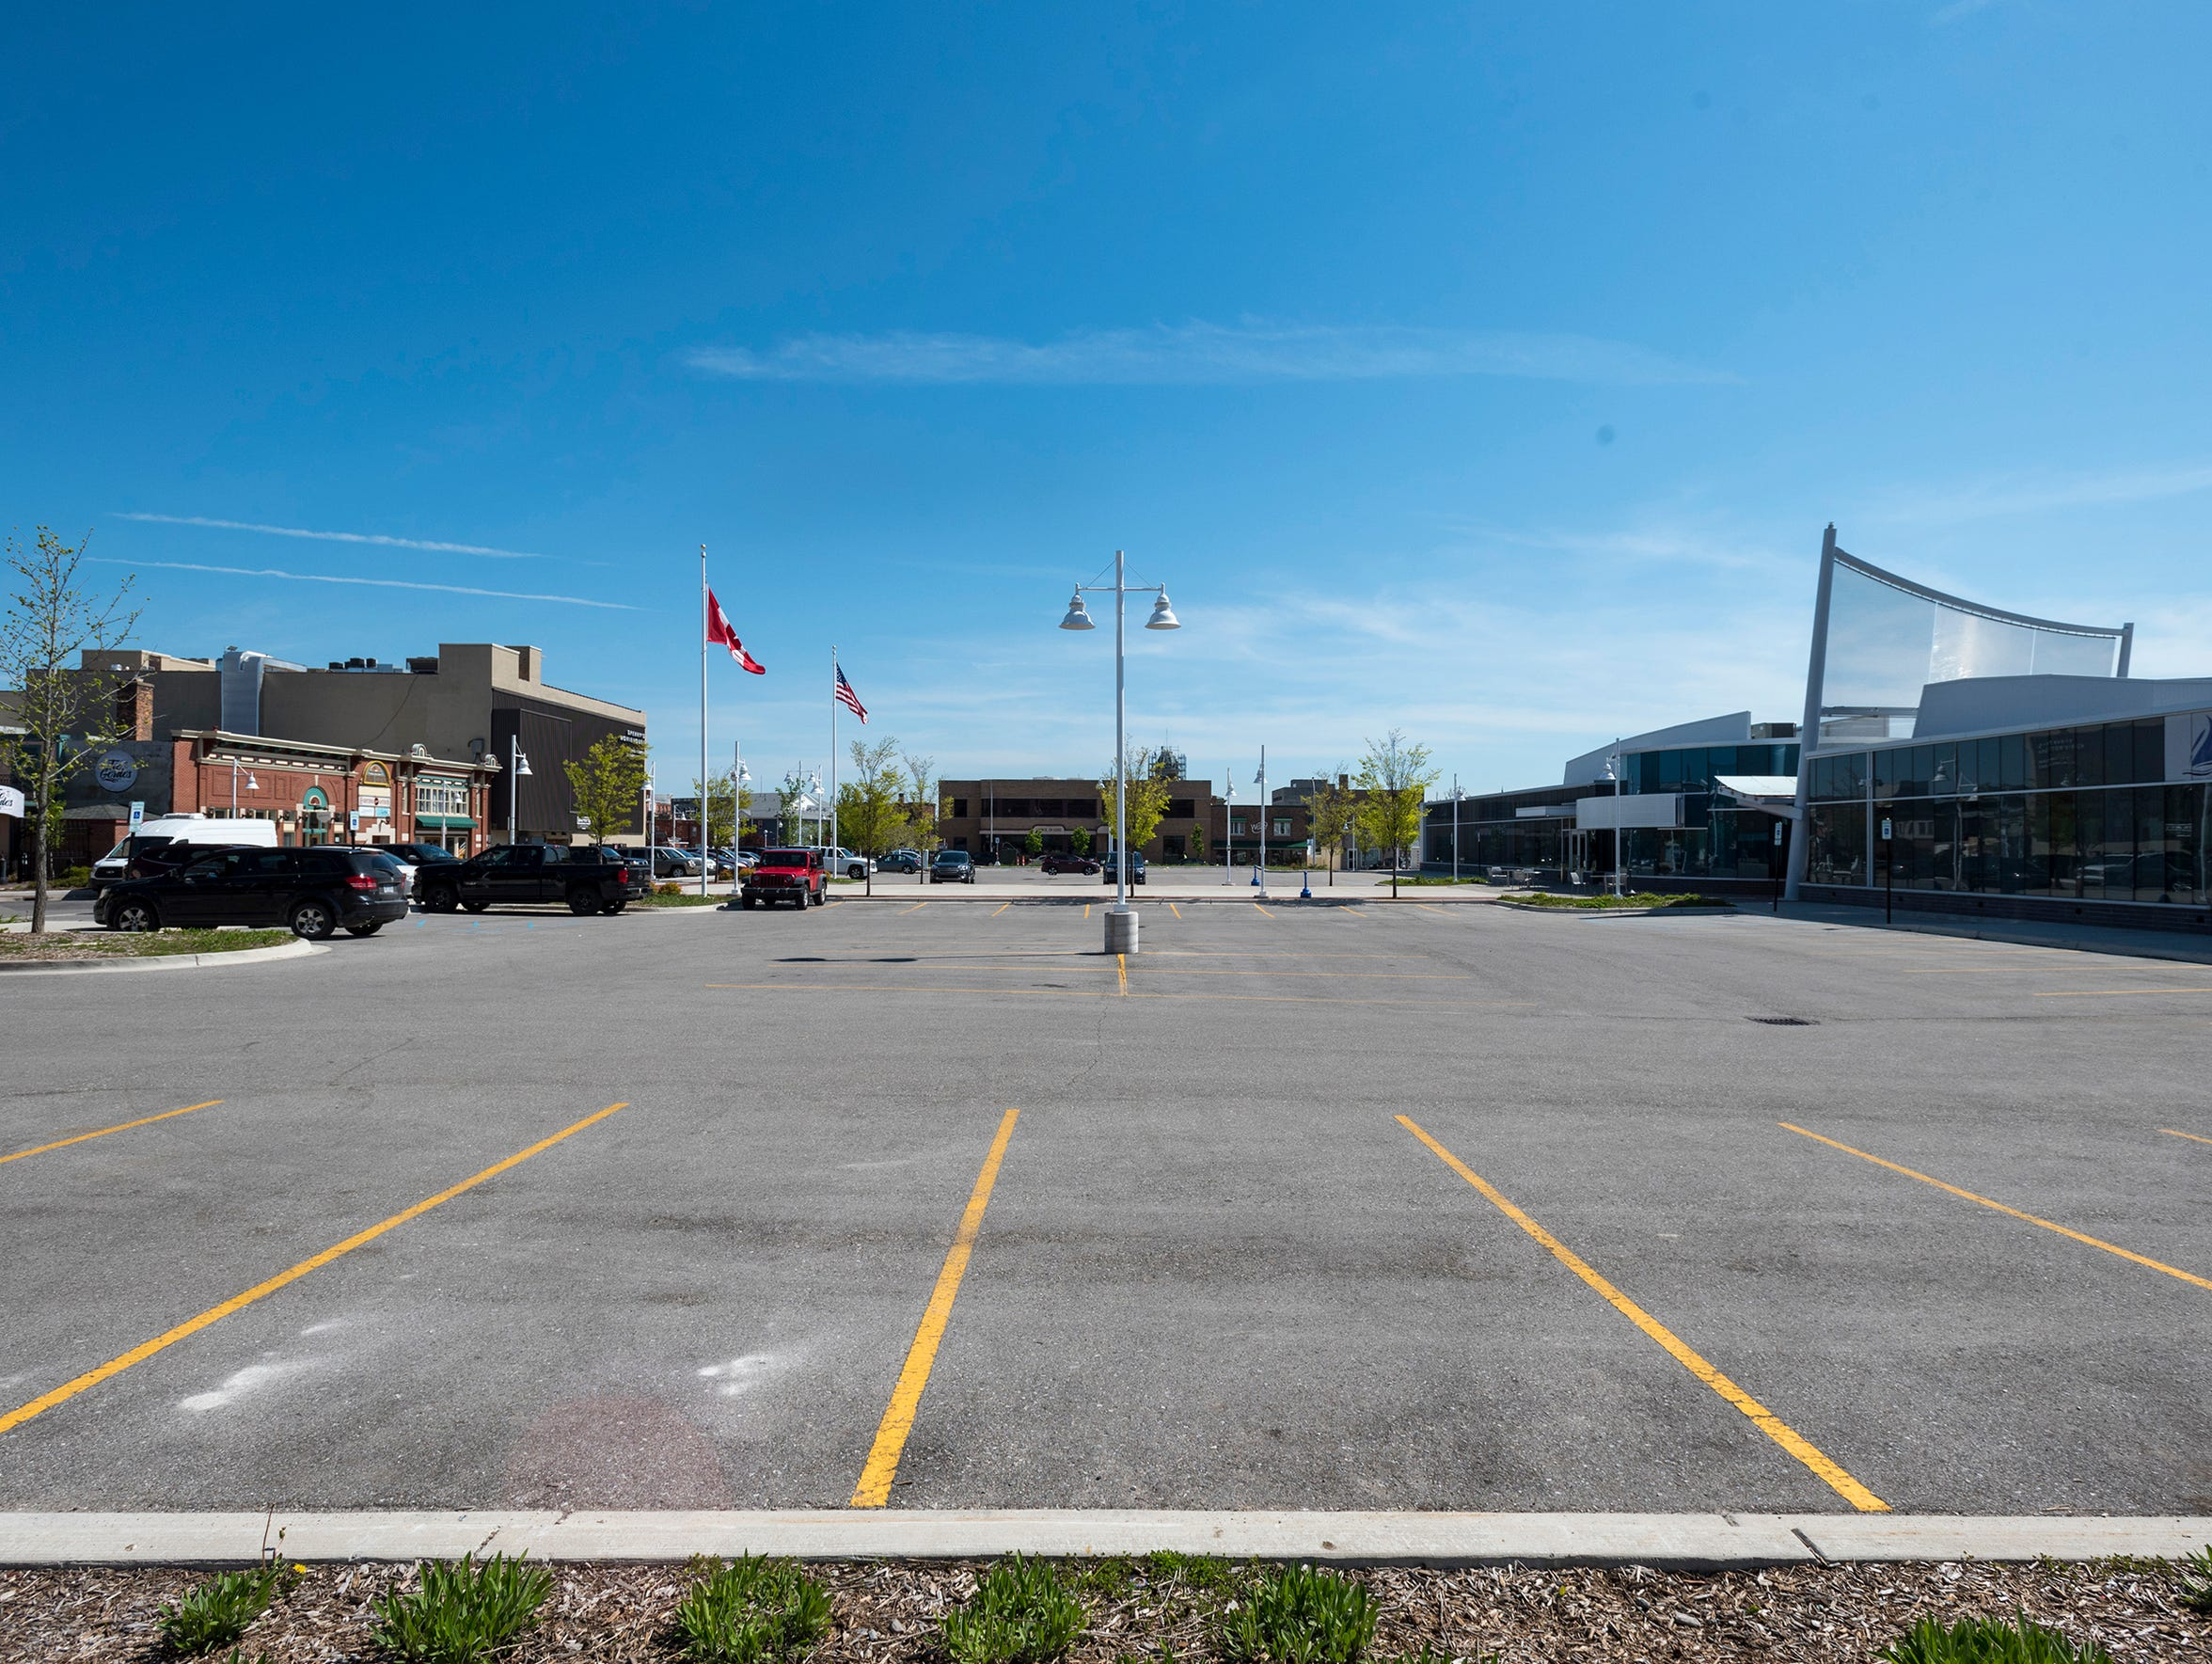 The parking lot at the bus depot in downtown Port Huron